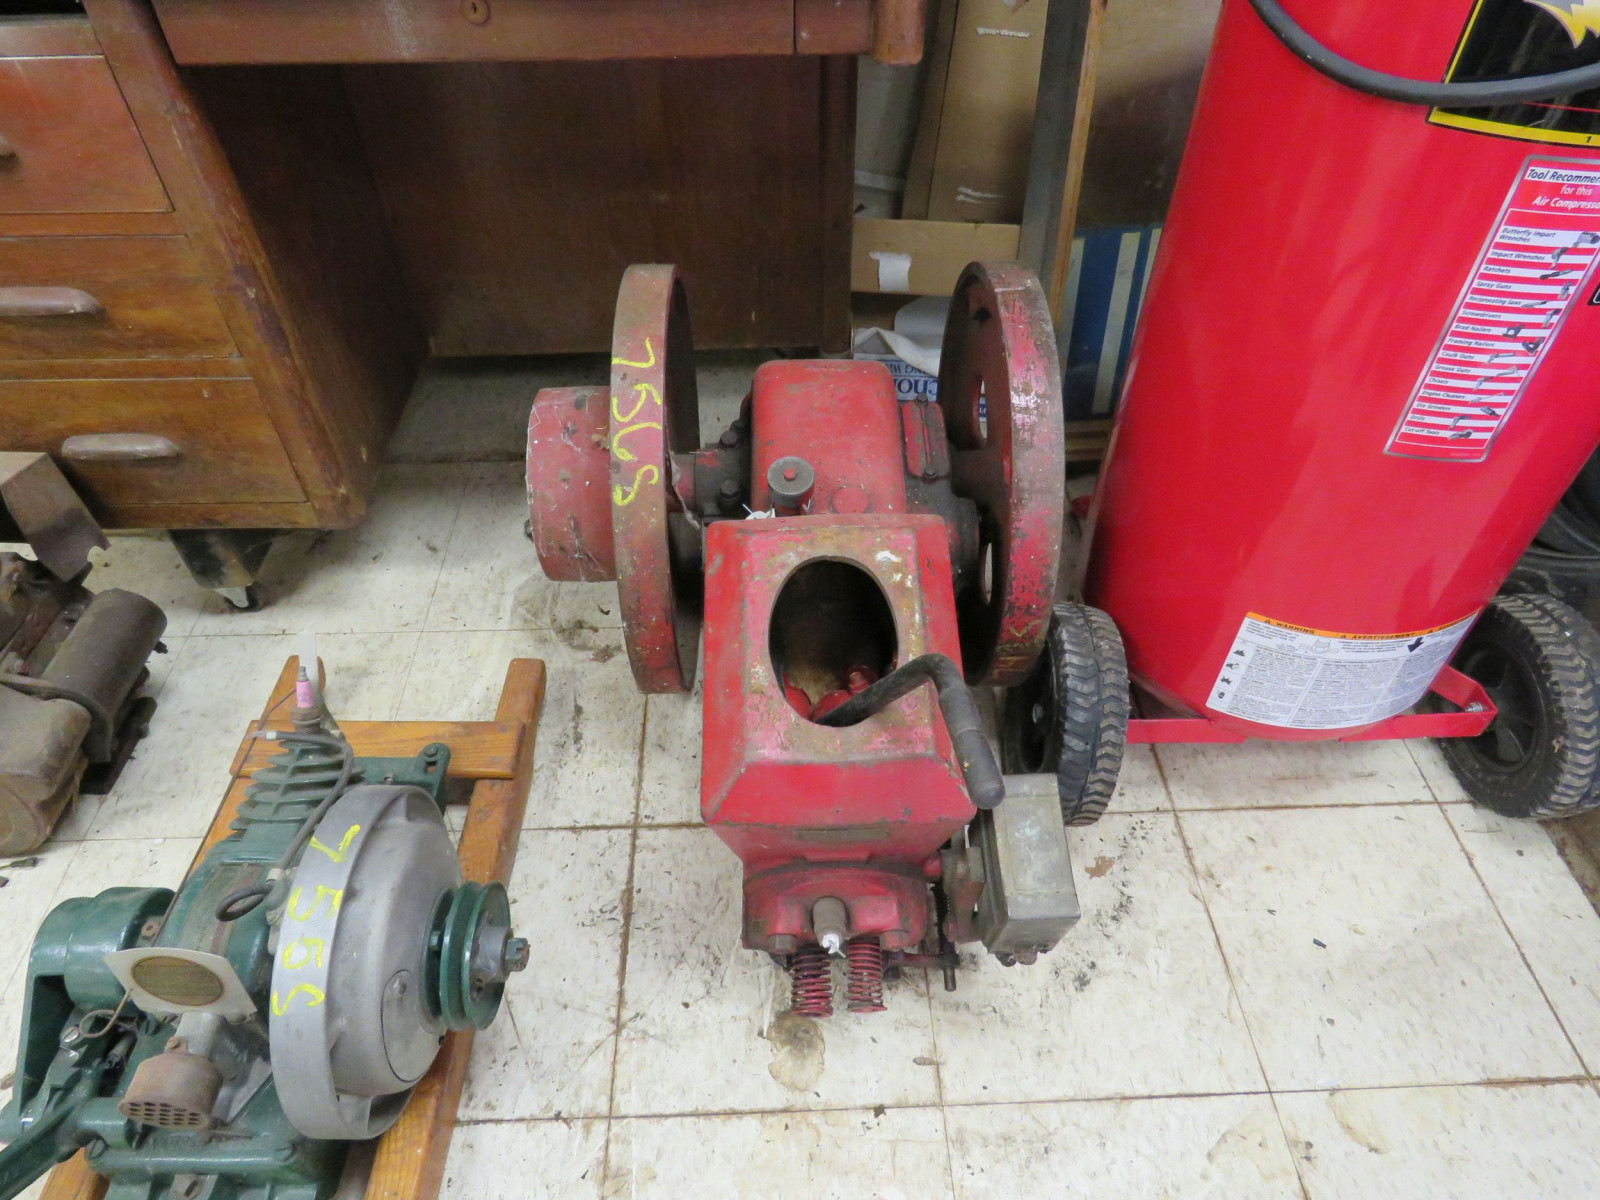 Stover 3 1/2 hp Stationary Engine - Image 2